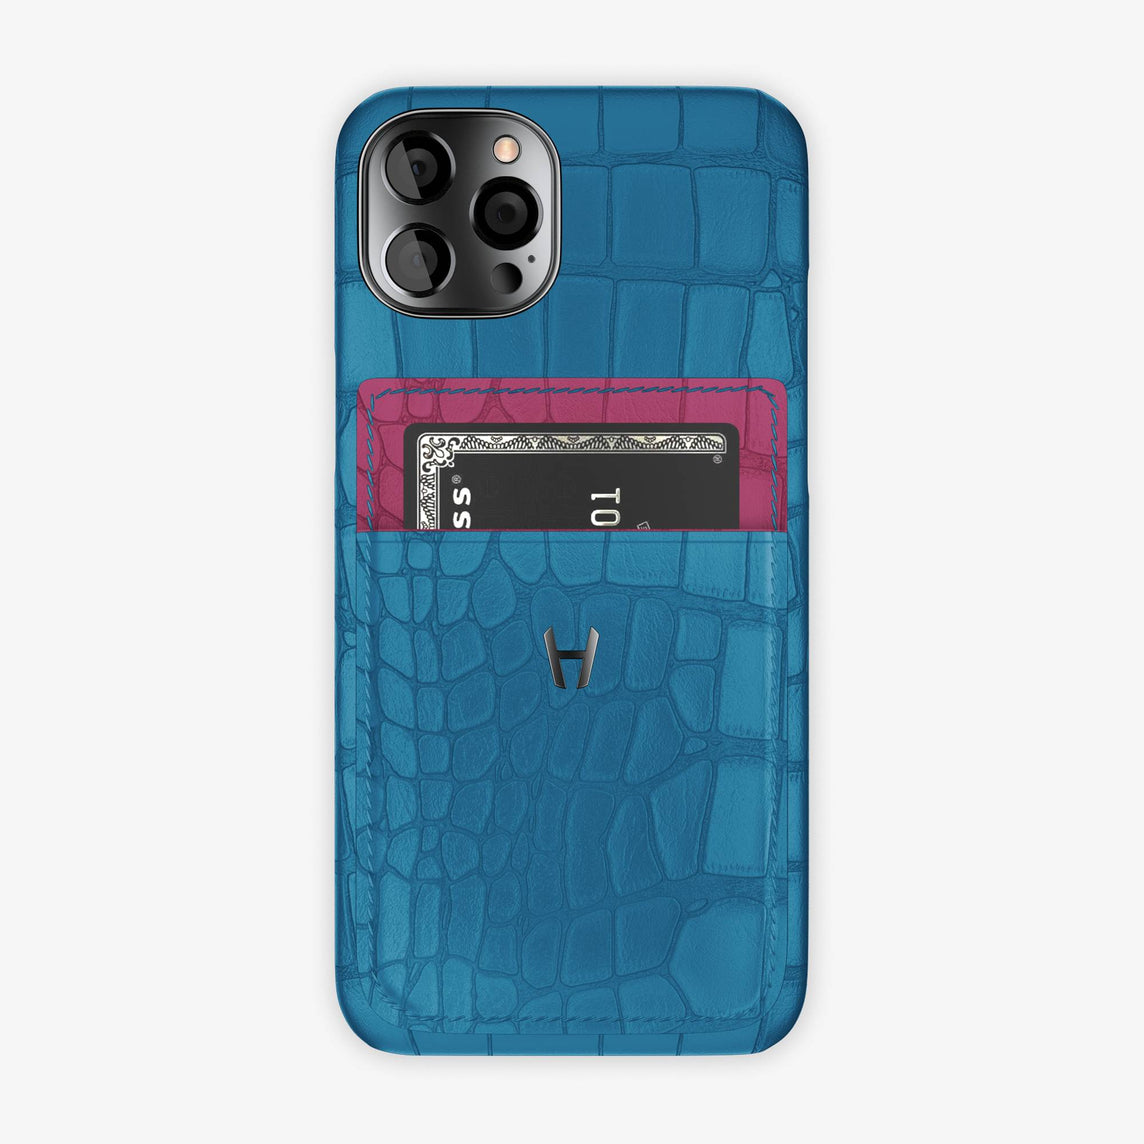 iPhone 12 & 12 Pro | Blue Lagoon/Pink Fuchsia - Black